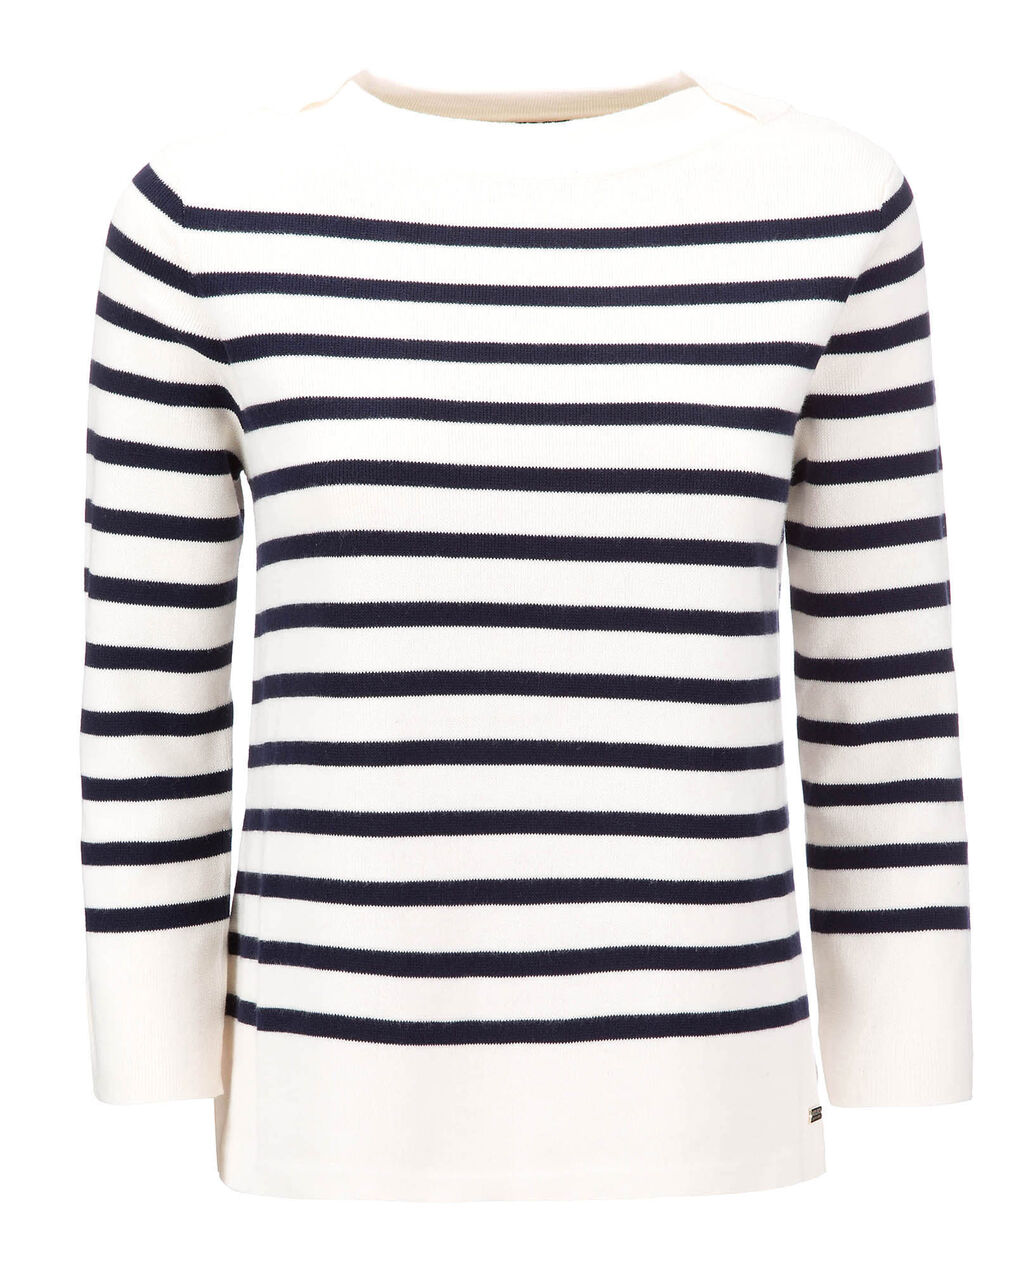 W'S  Milano Stitch Crew Neck, SHELL STRIPE, hi-res